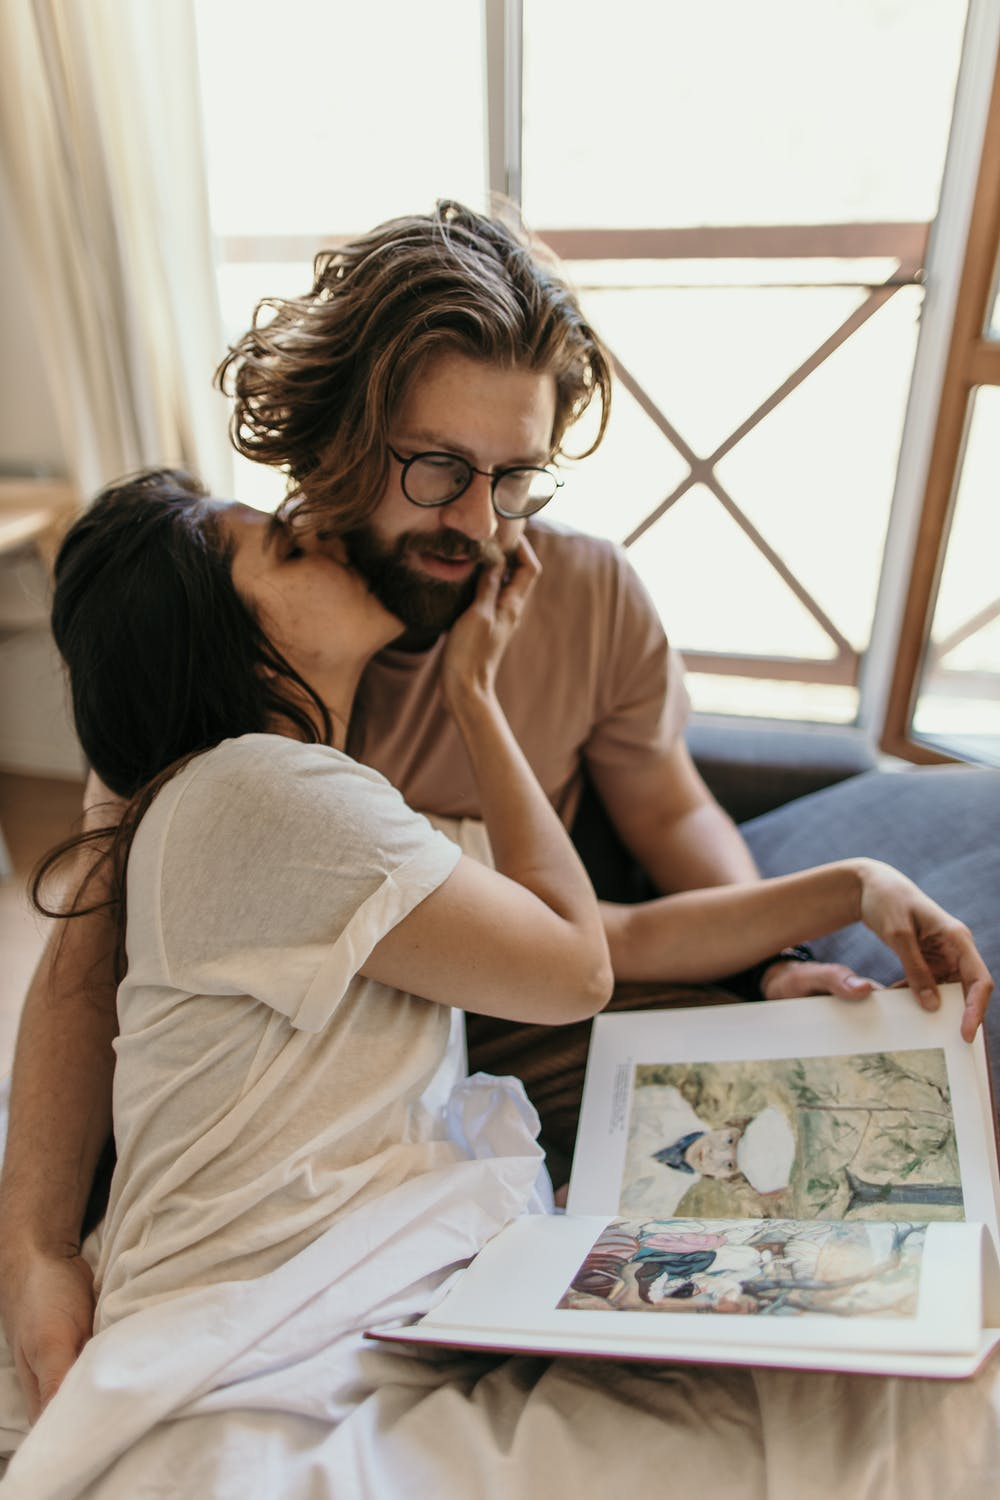 5 simple ways to achieve your relationship goals